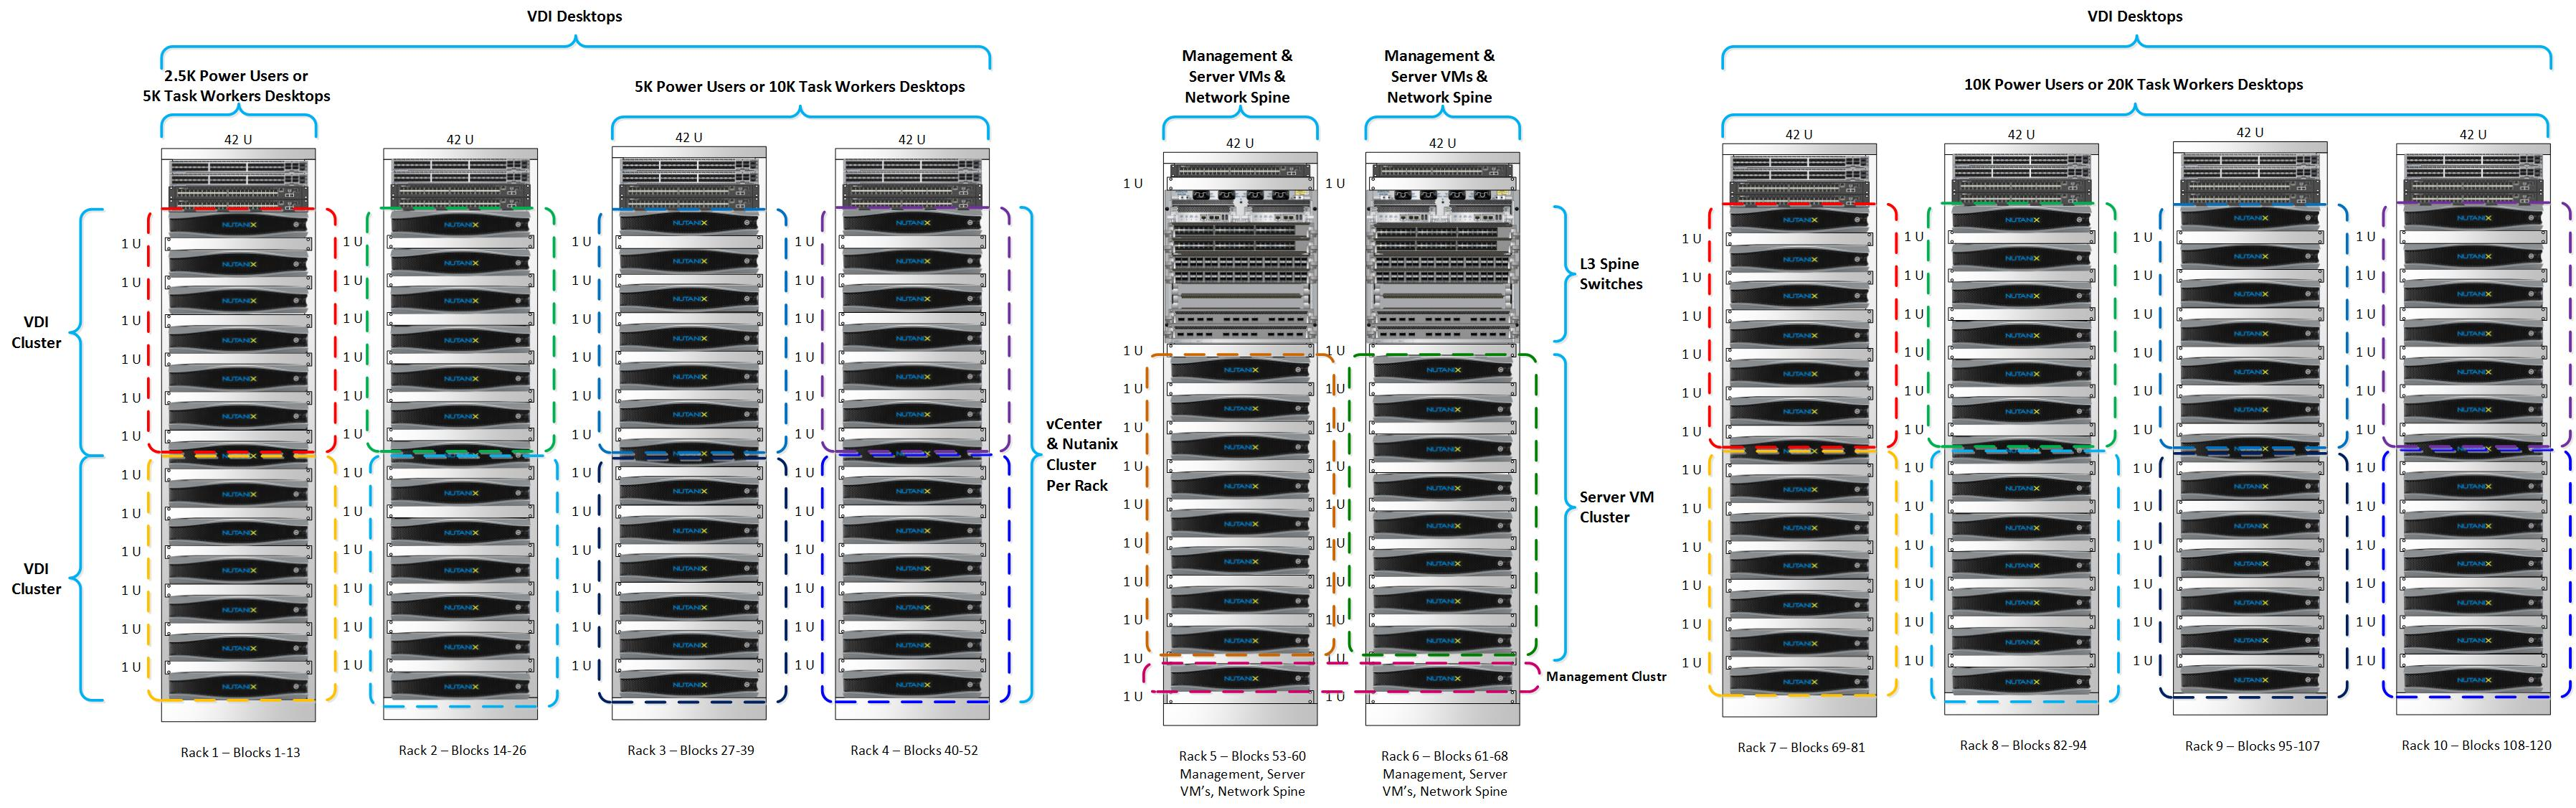 Nutanix VDI Example Architecture for 20K to 200K+ Power User ...